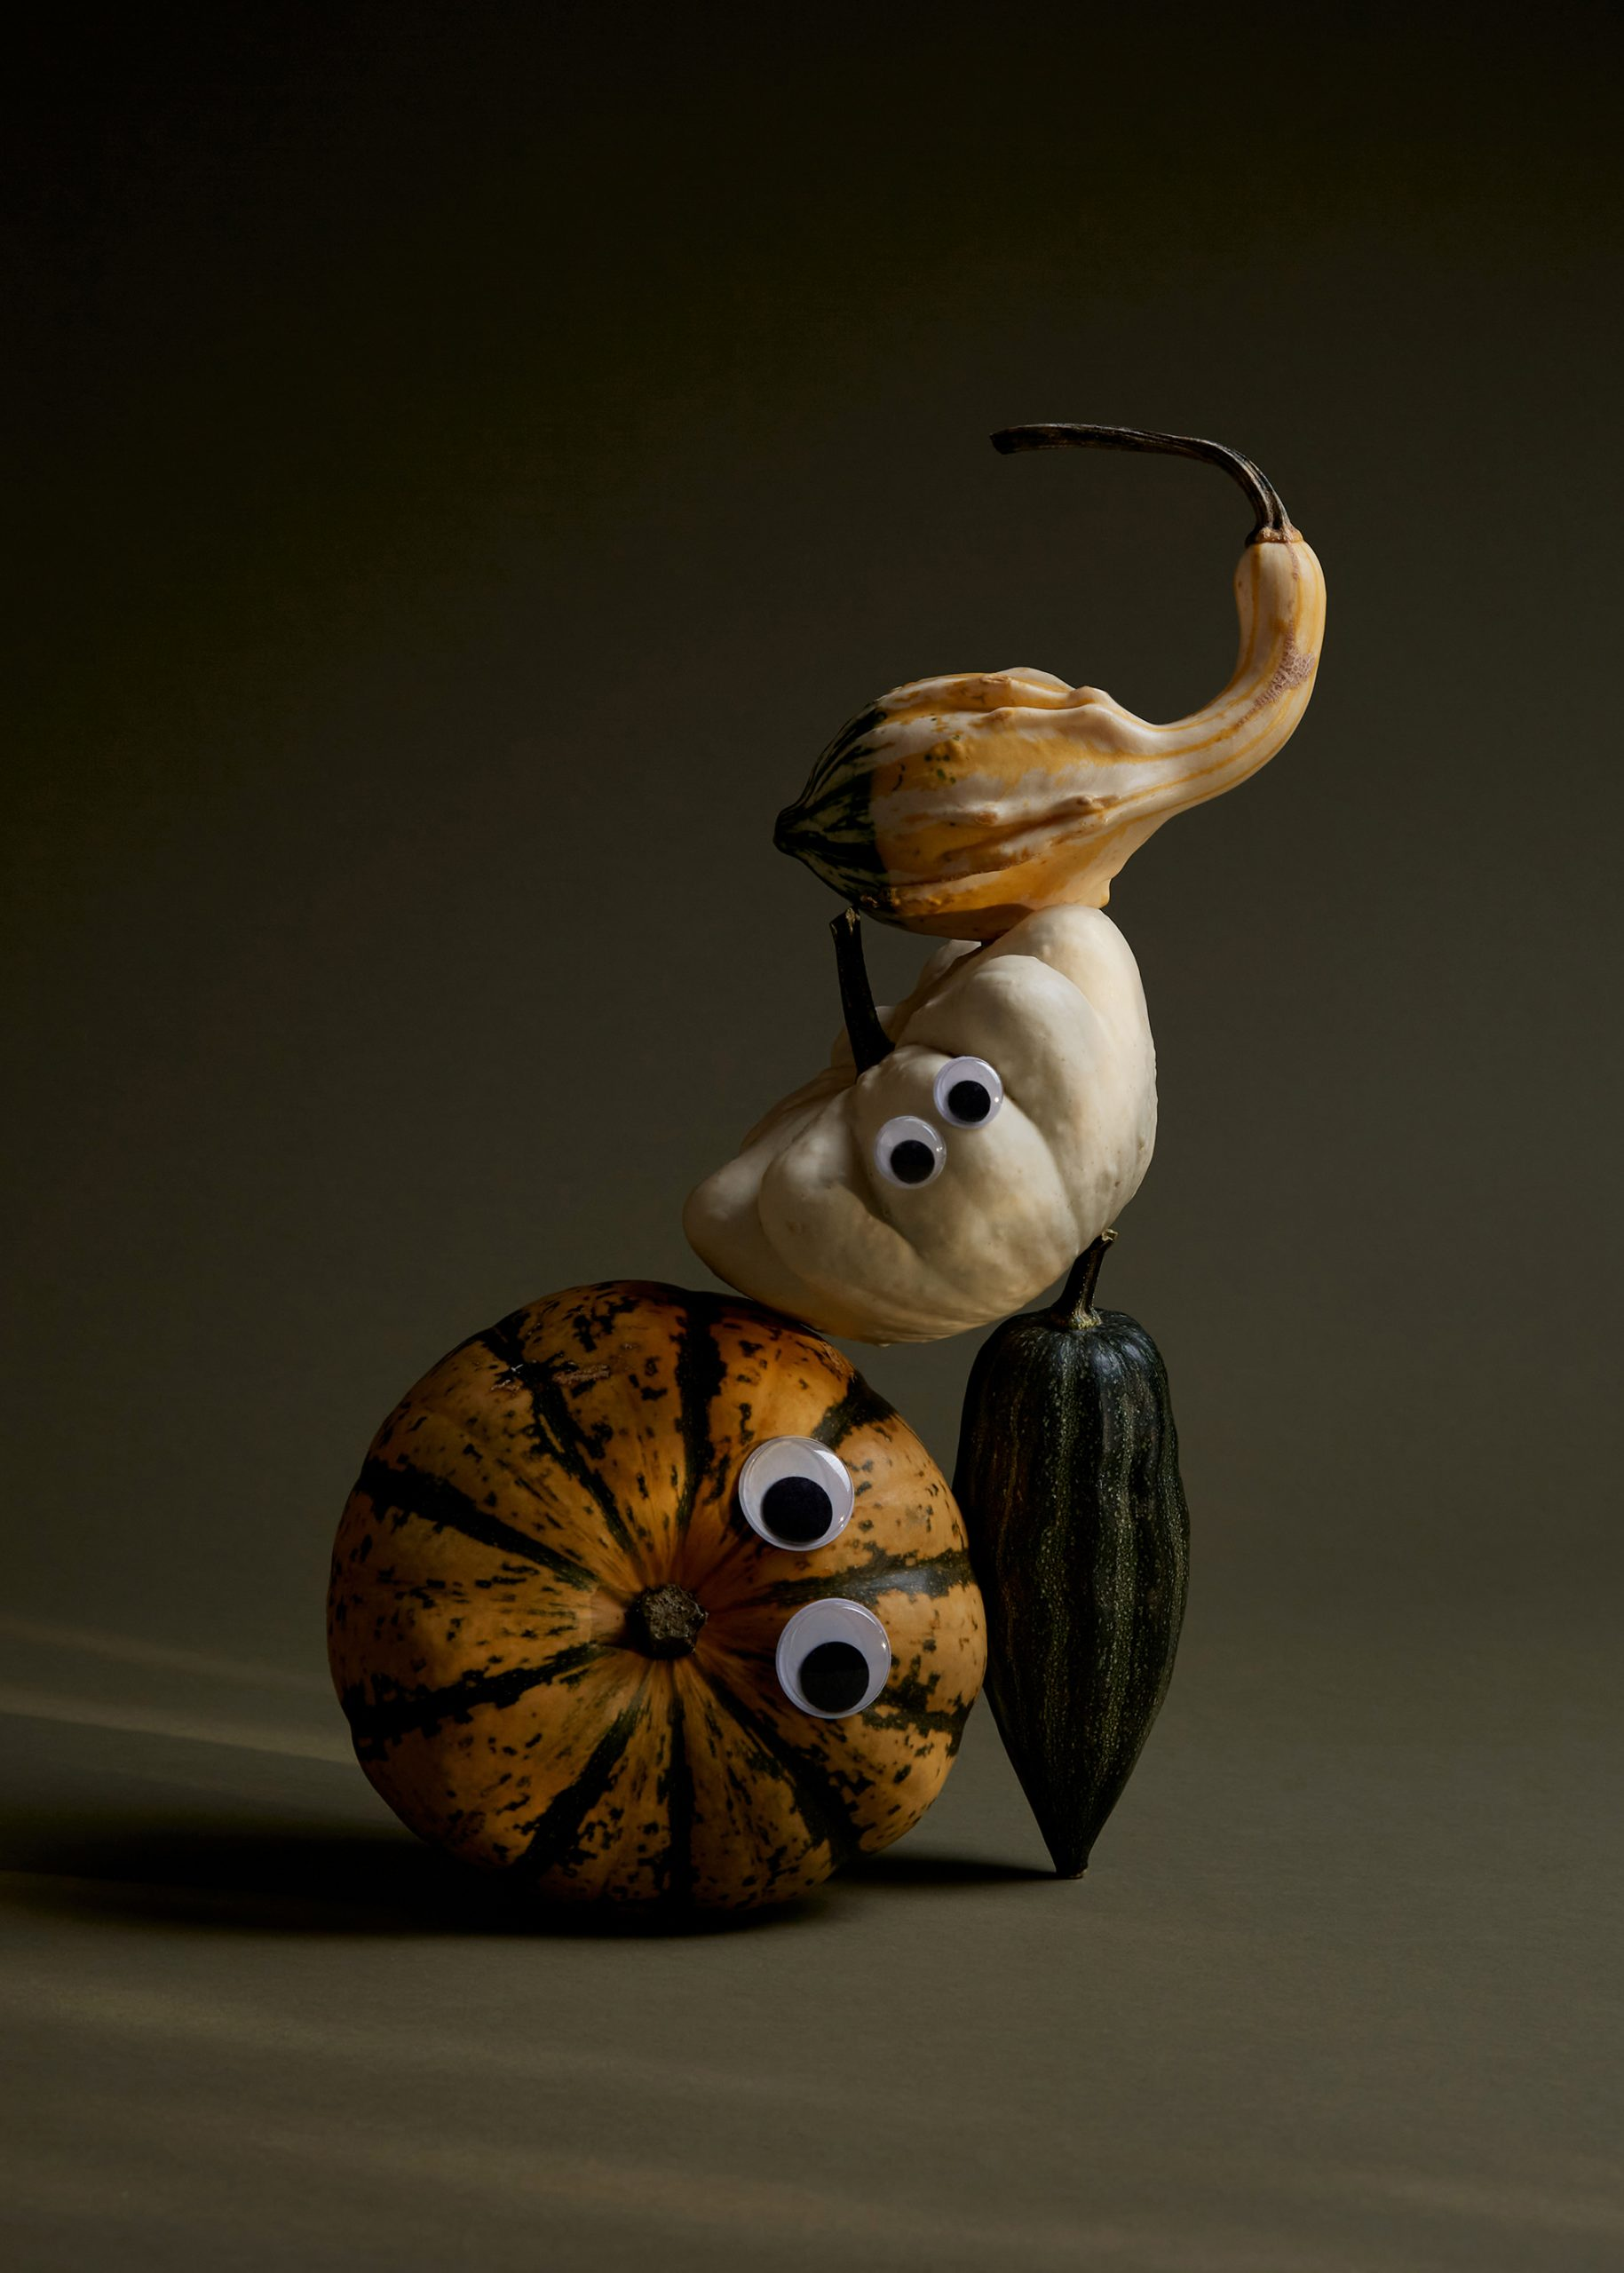 Rikki_Ward_Photographer_GOURDS_2